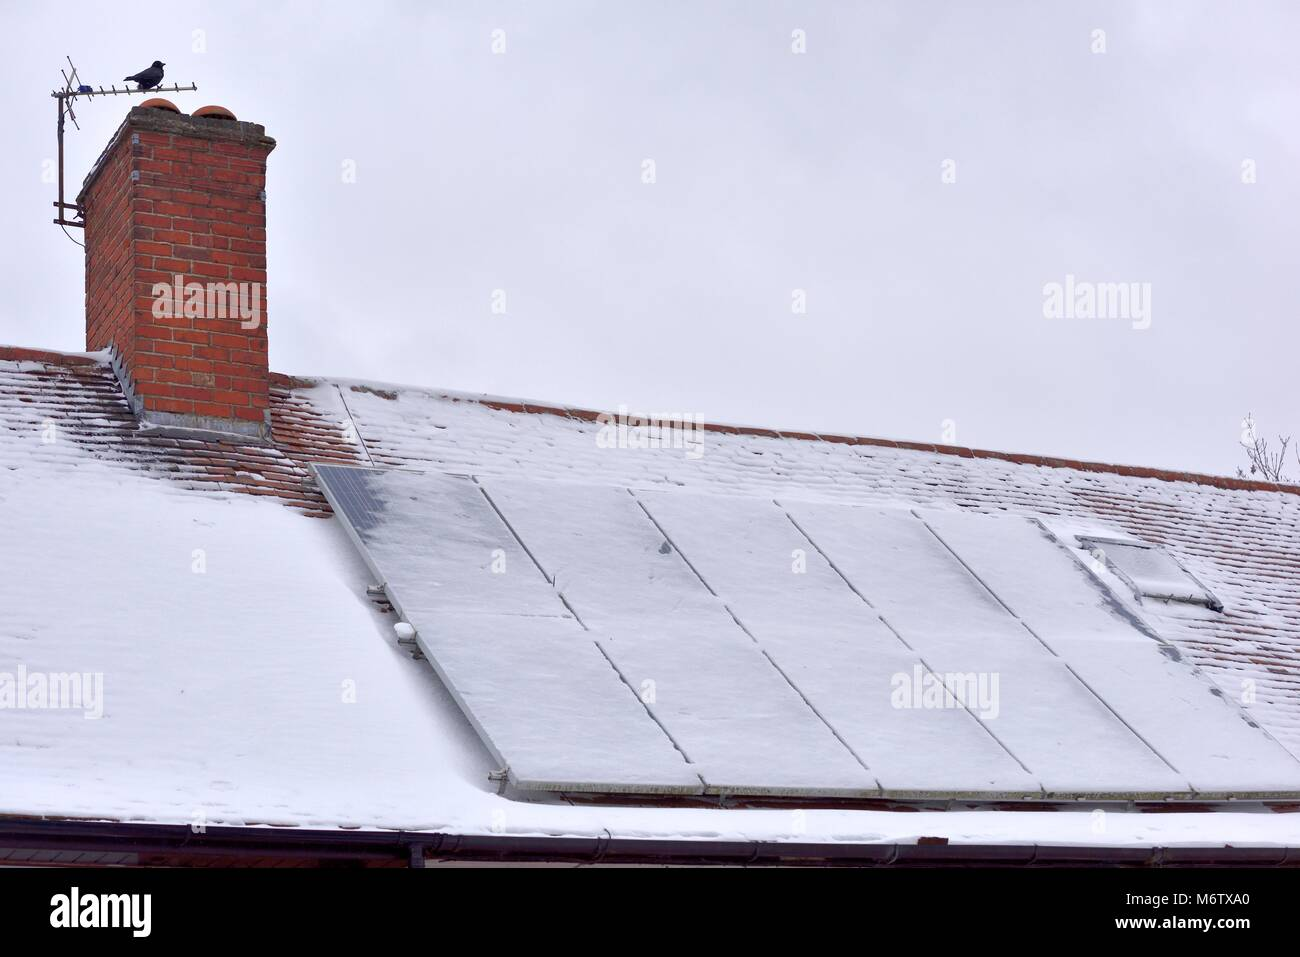 Solar energy panels on a roof covered in snow - Stock Image